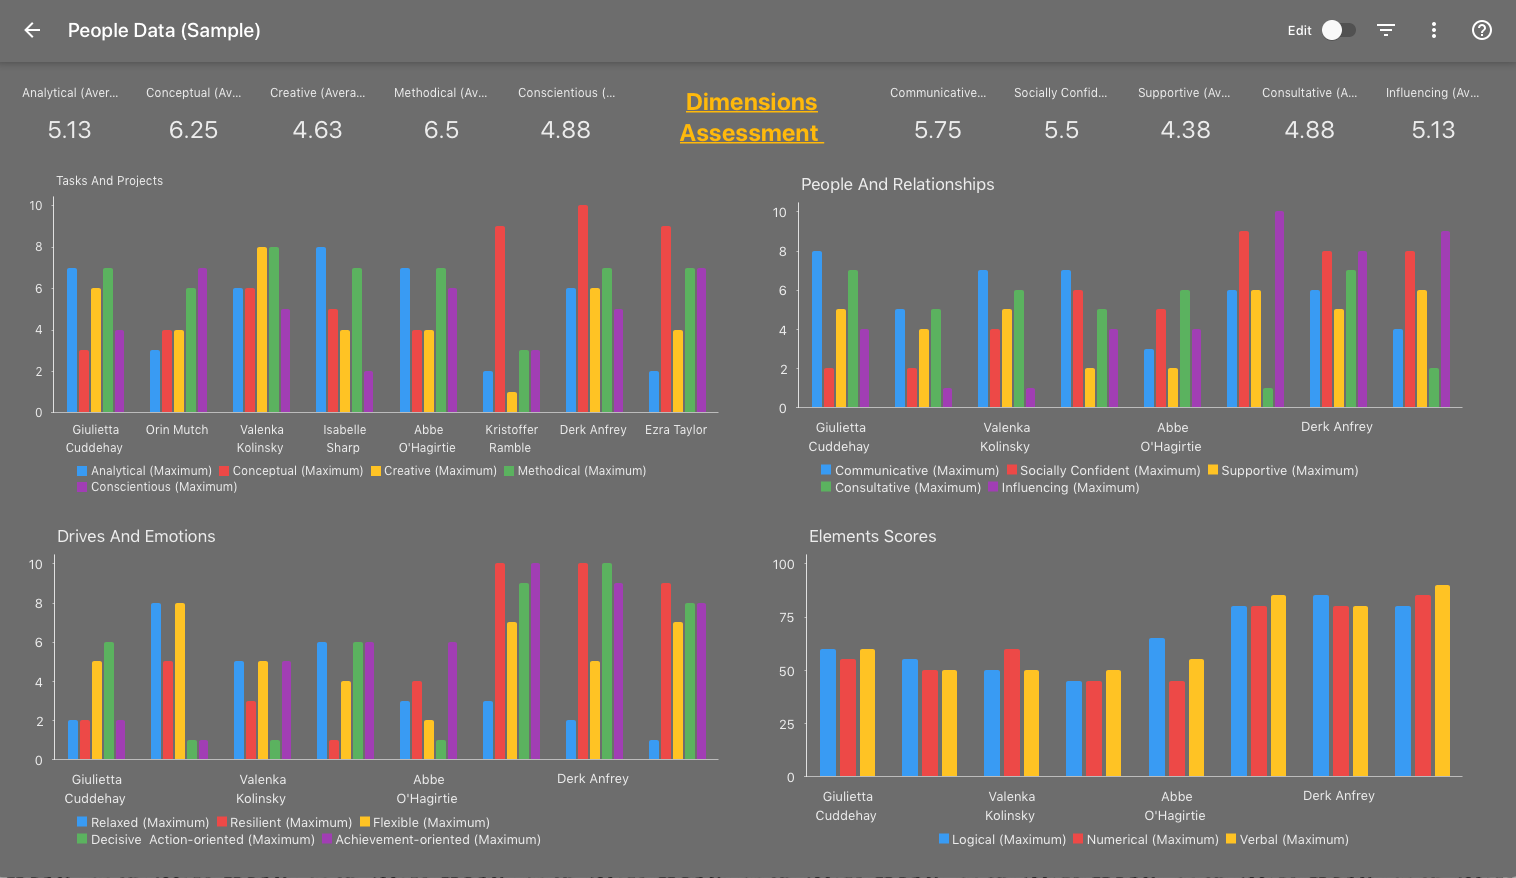 Intuitive Dashboards - This dashboard shows the Dimensions personality assessment data which can be filtered using any combinations of demographic filters to view only the data your need and discover hidden insights.